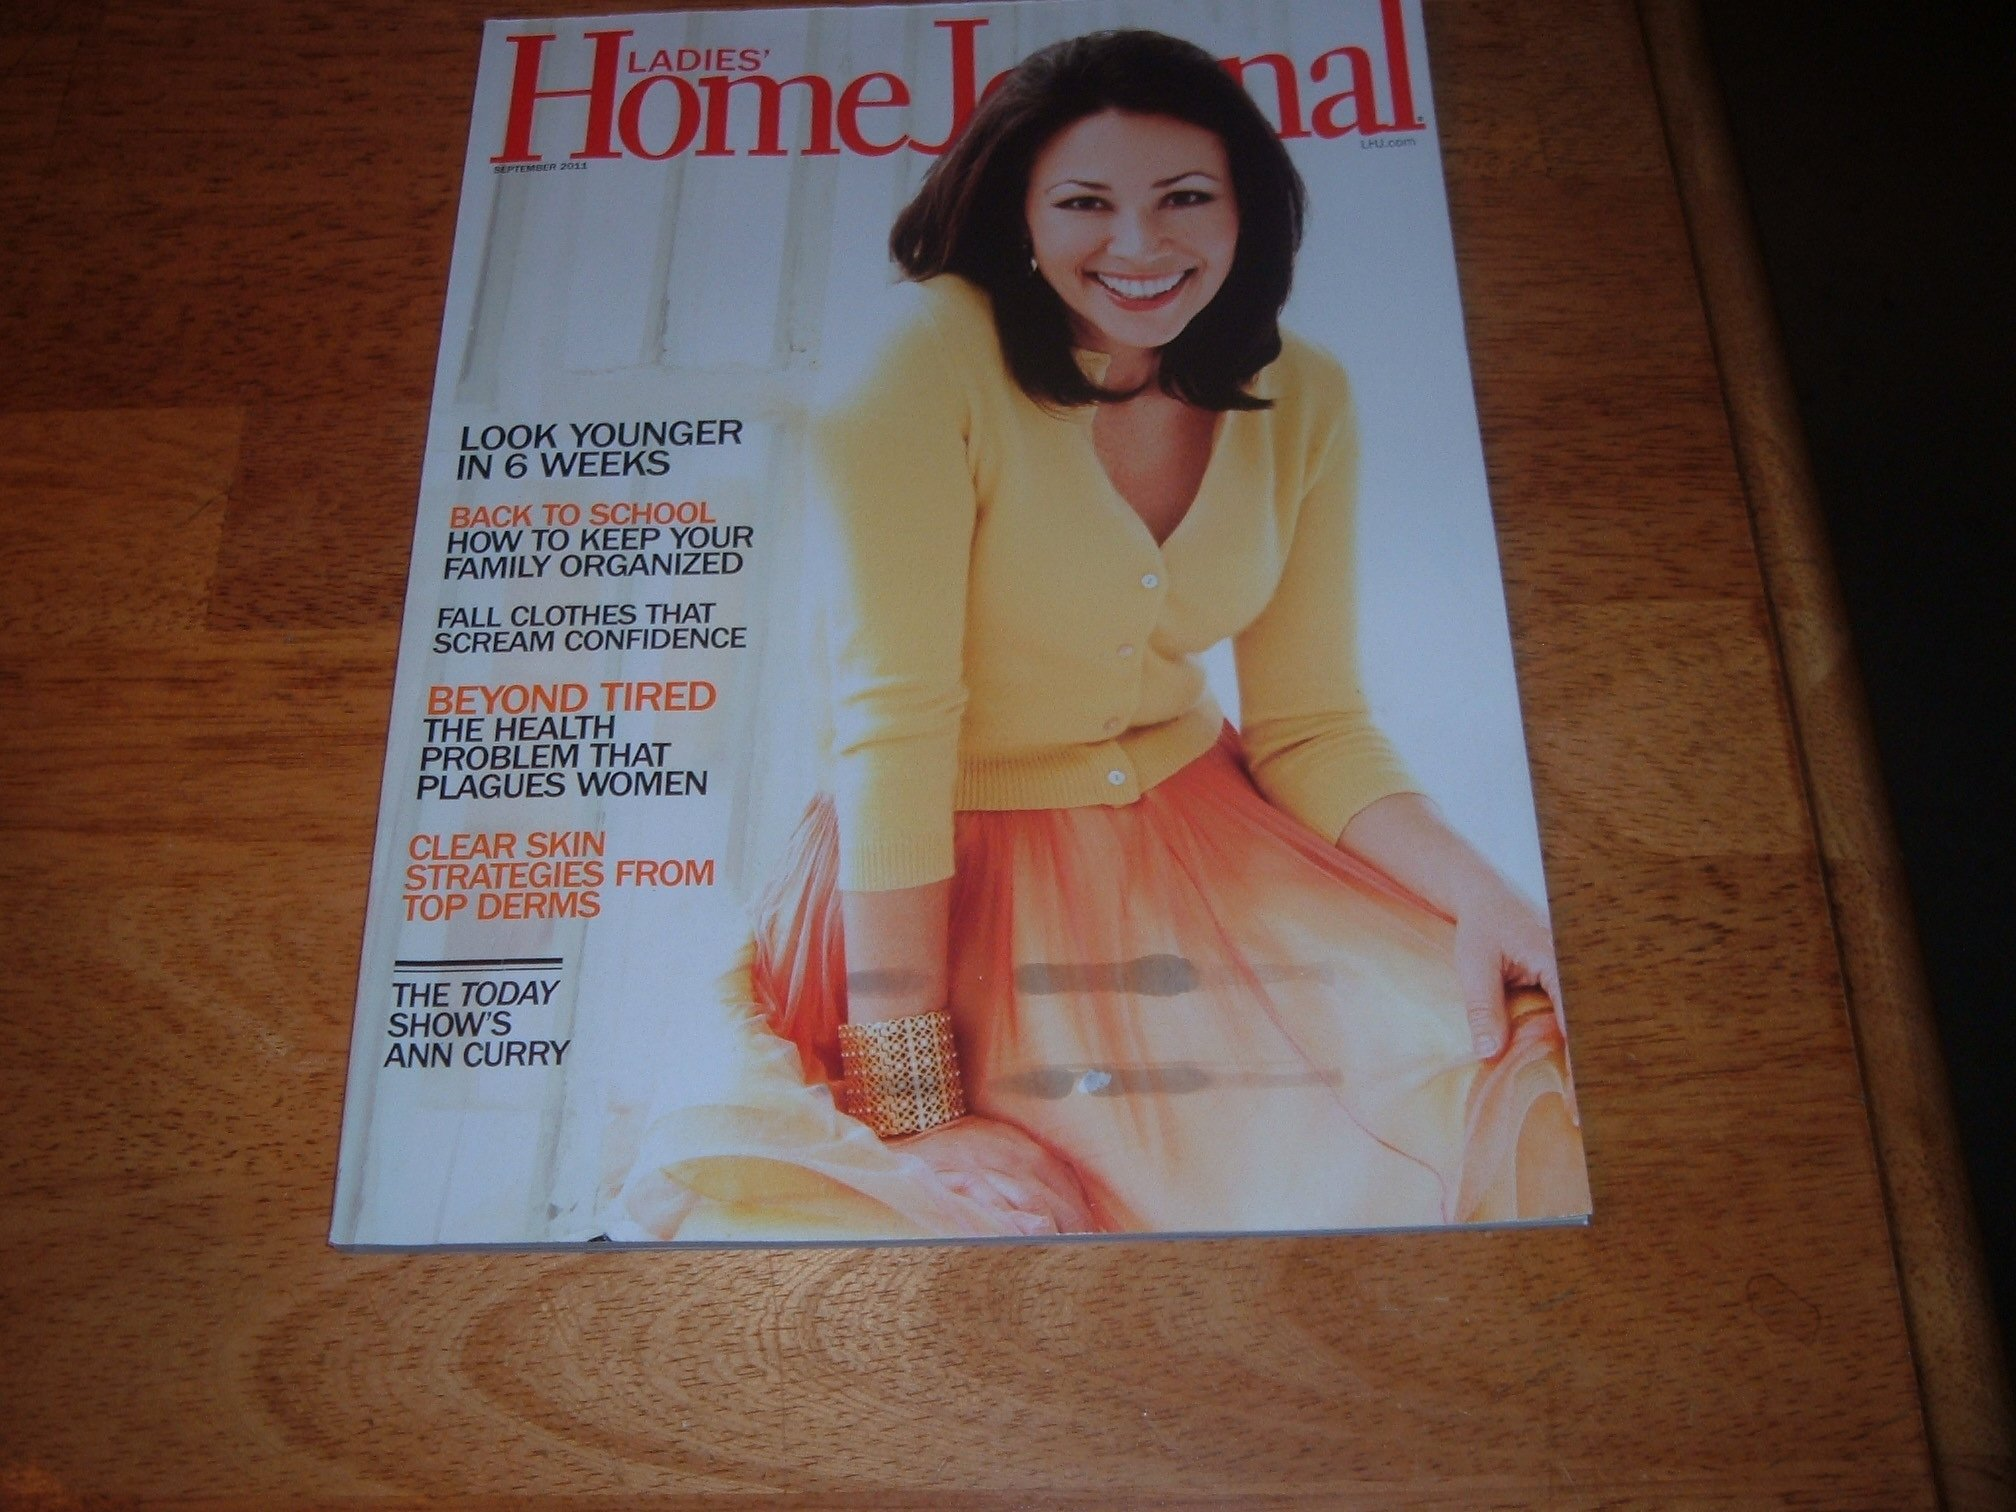 Read Online Ladies' Home Journal magazine, September 2011-Ann Curry of Today Show on cover. PDF